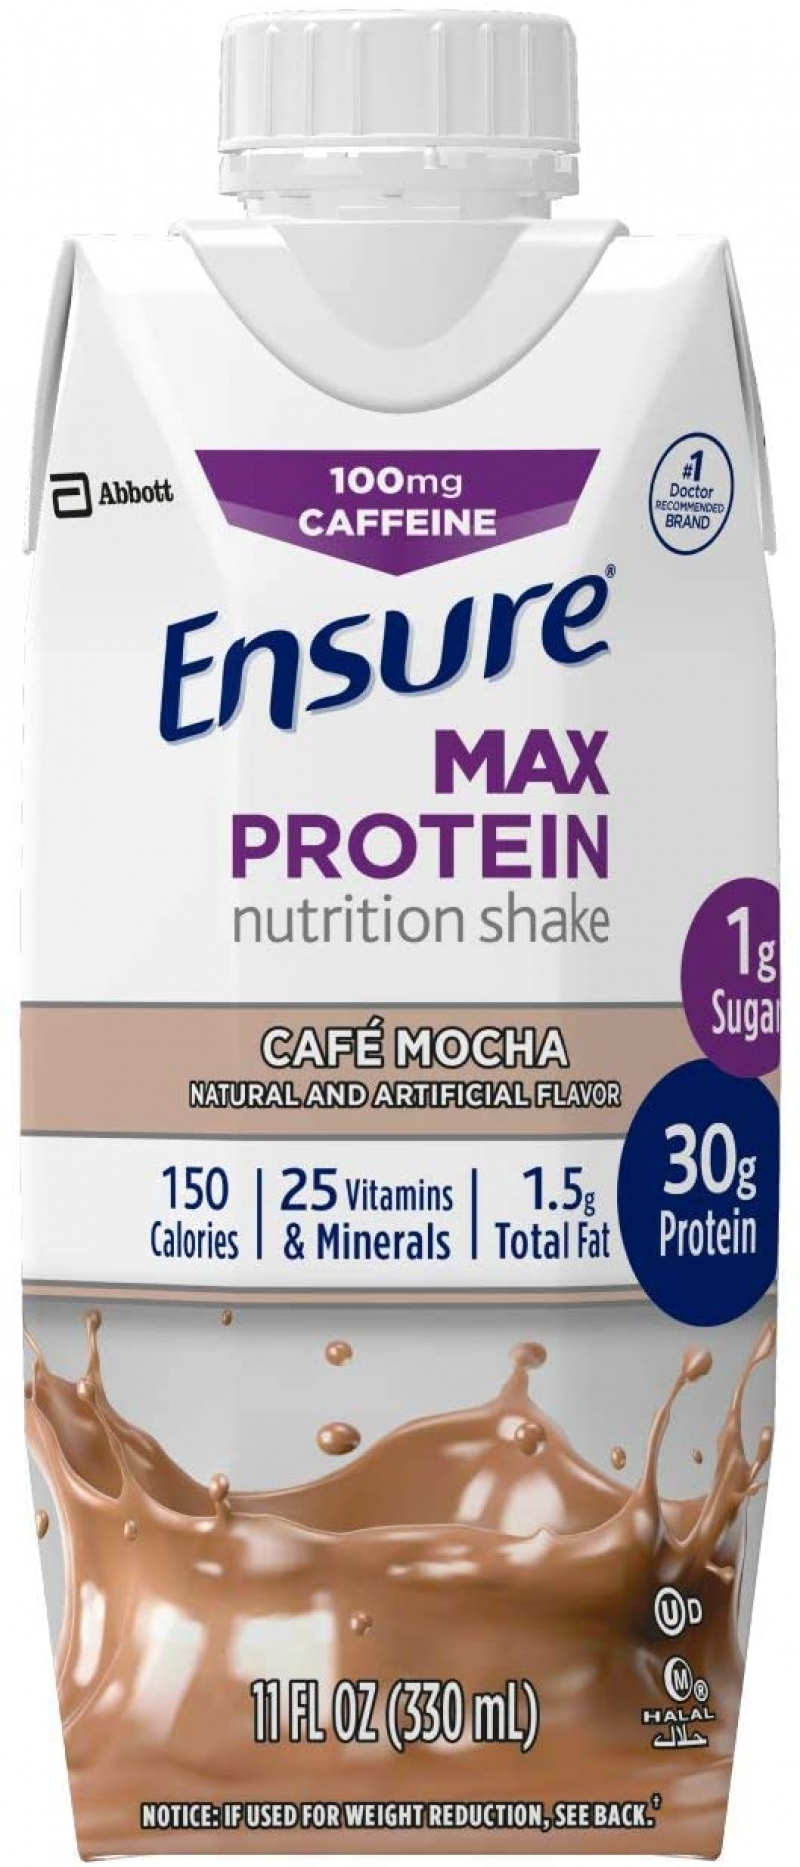 ihocon: Ensure Max Protein Nutritional Shake with 30g of protein, Cafe Mocha, 11 fl oz, 12 Count 高蛋白奶昔,咖啡摩卡口味